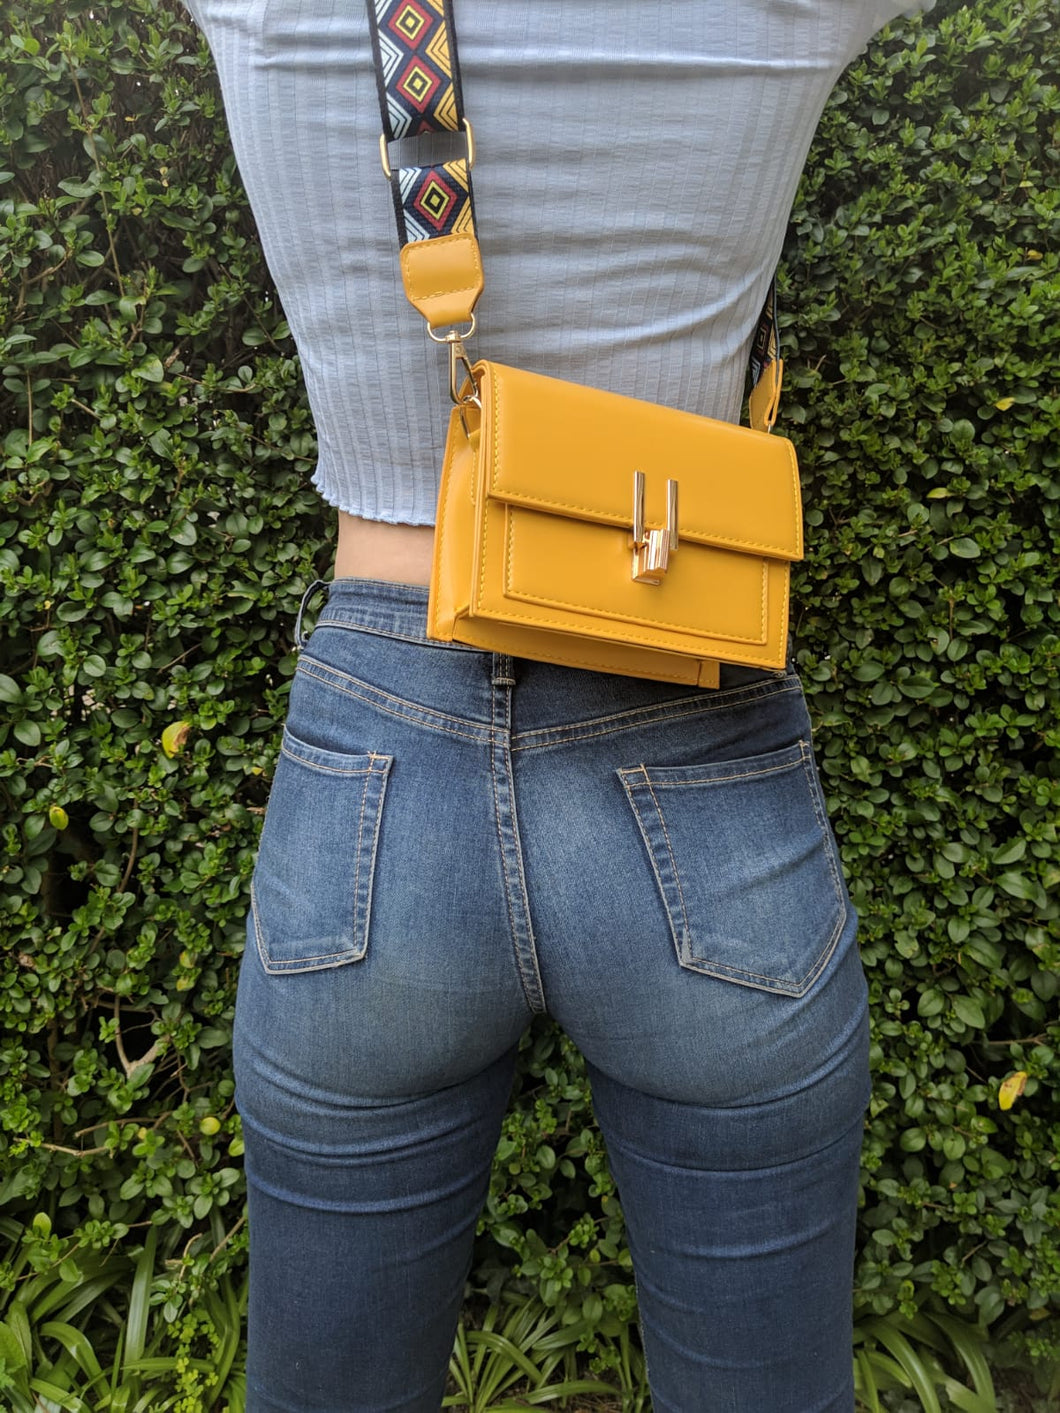 yellow over-the-shoulder bag.